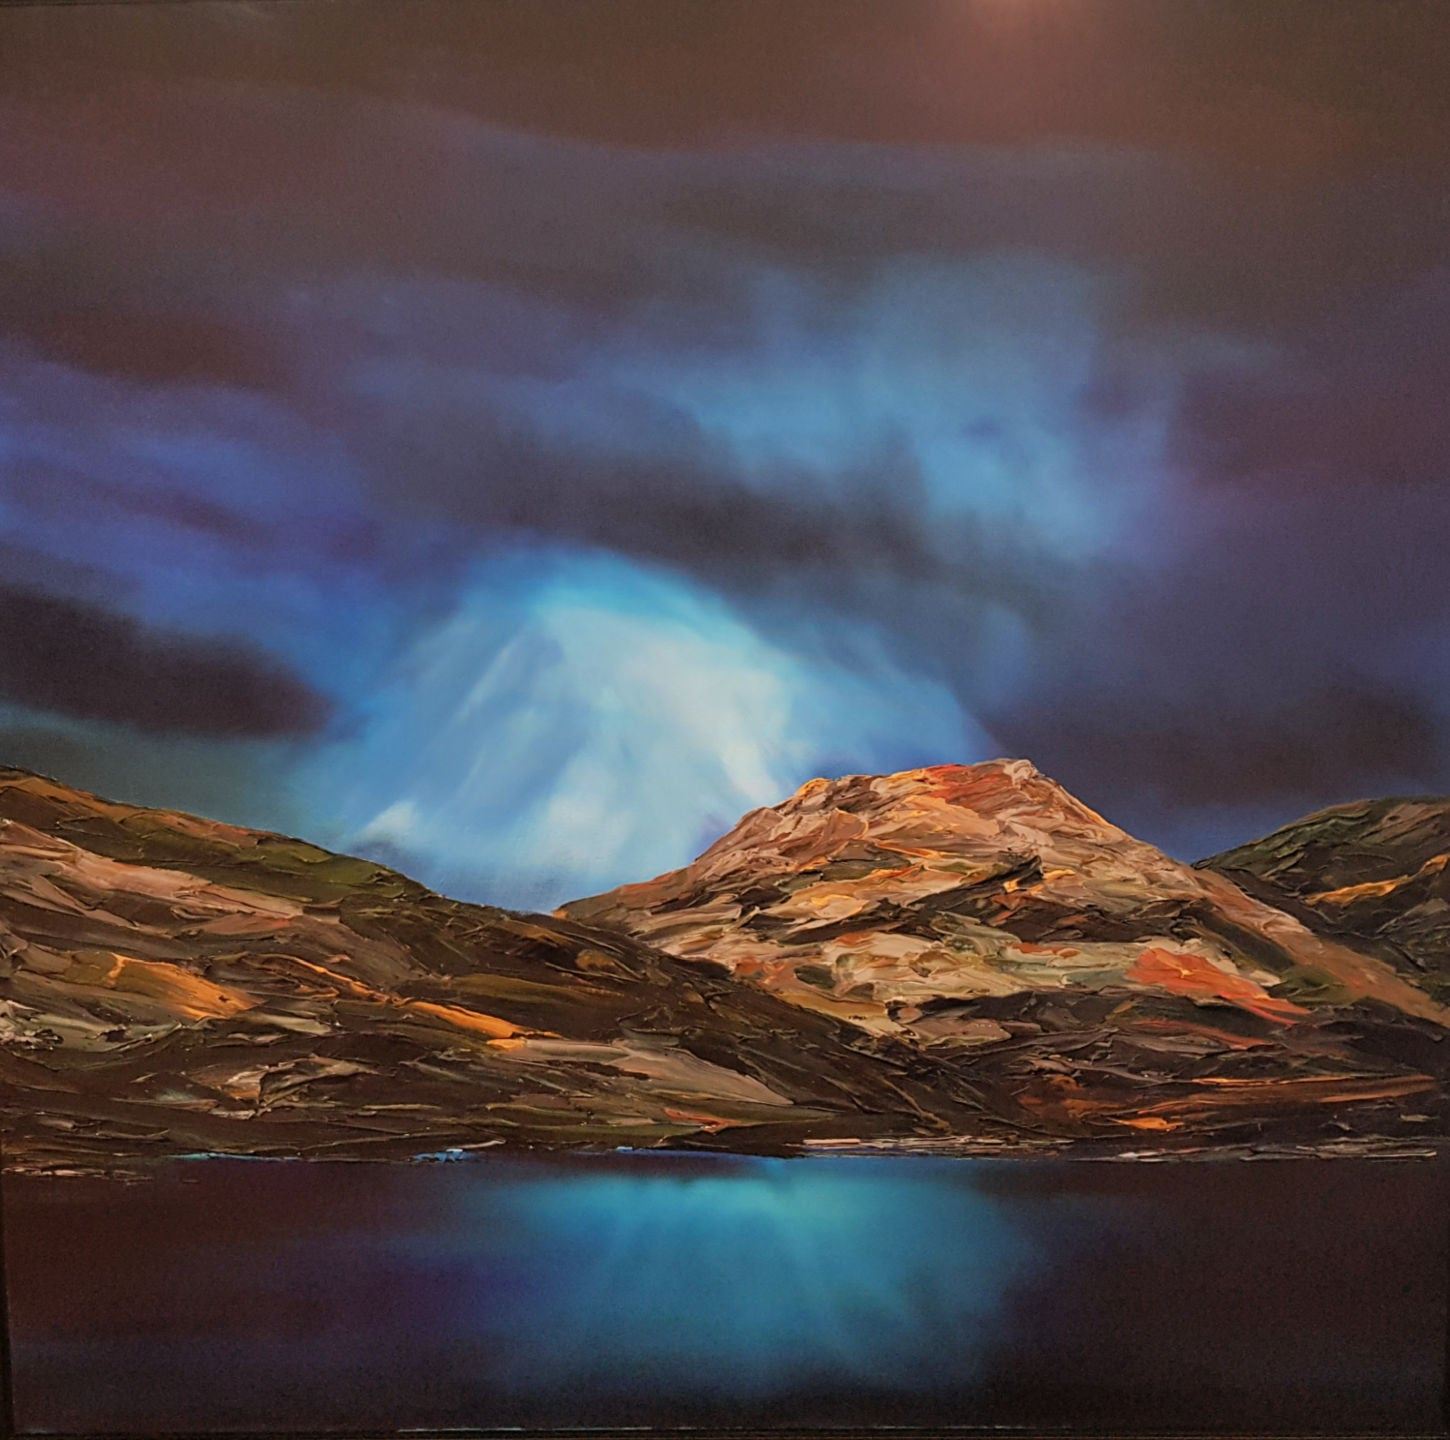 Stuart Clues Painting ~ 'Moonshadow Over Mt. Amos' - Gallery Salamanca Hobart Tasmania